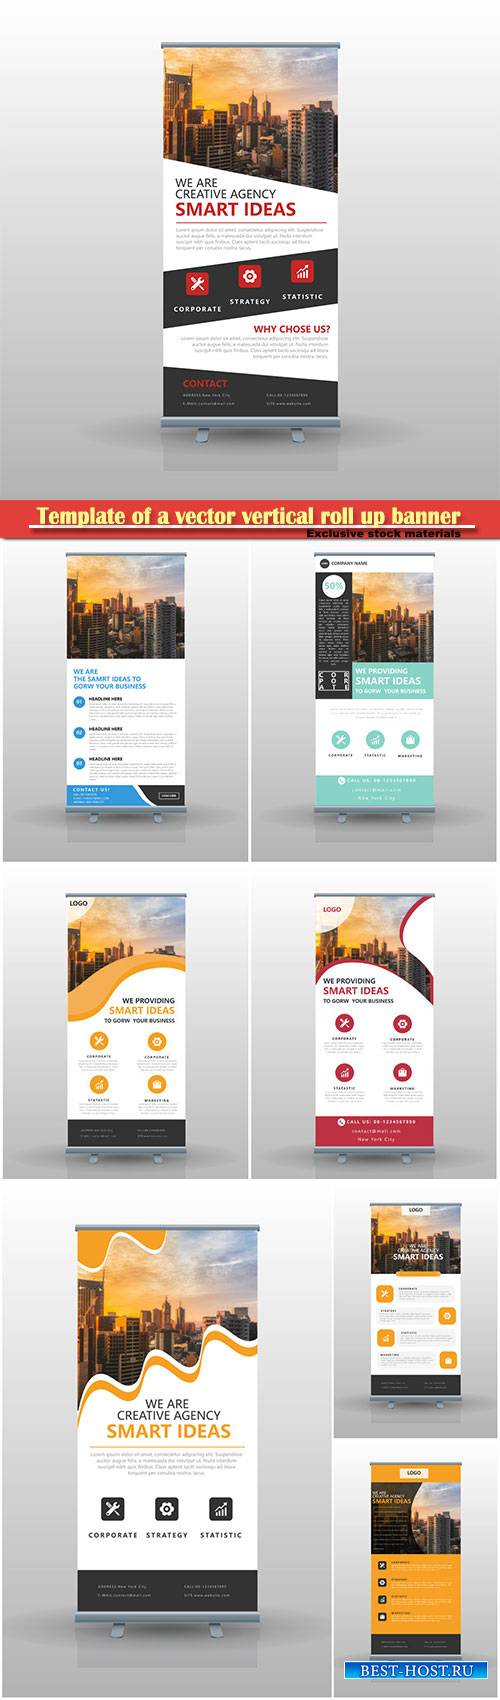 Template of a vector vertical roll up banner for business #4